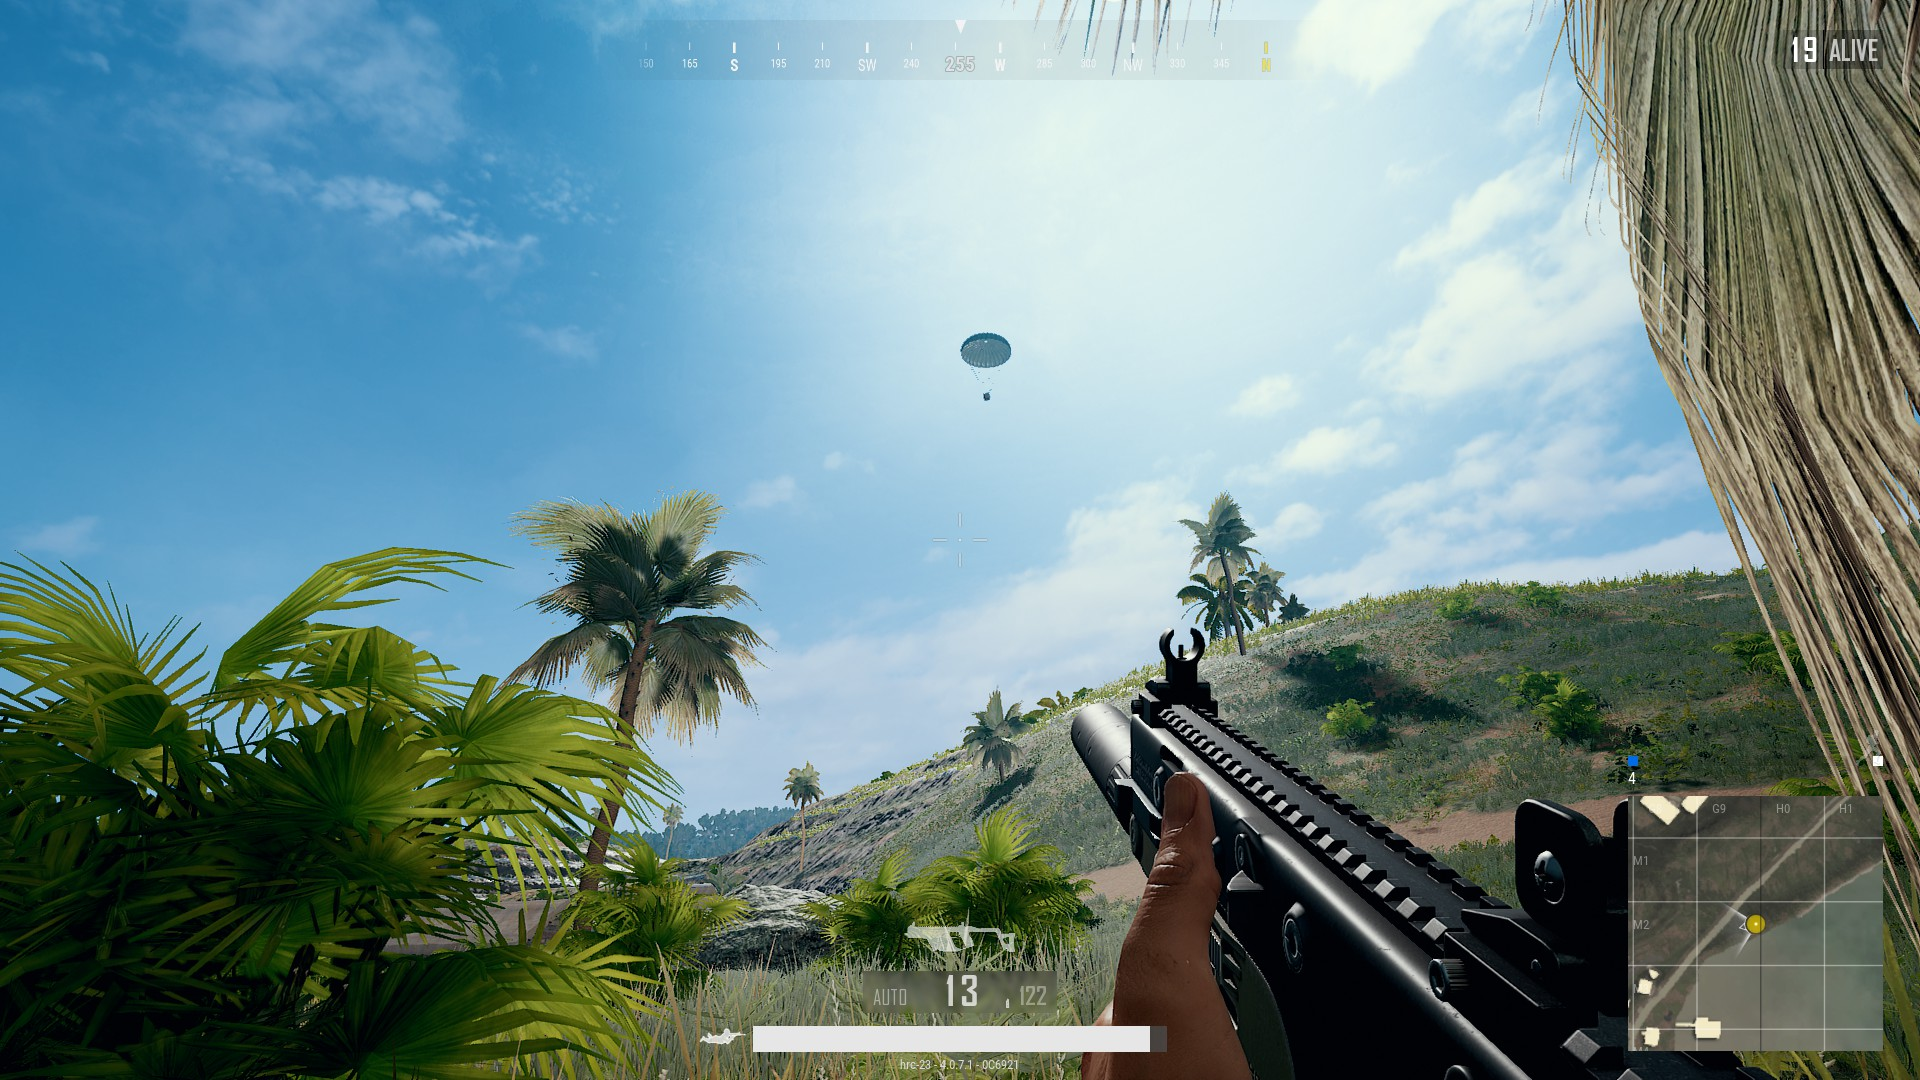 This Might Be The Conclusion Of Our PUBG Sanhok Beta Map Guide, But Head  Over To Our PUBG Vehicles Locations Guide For More, Or Our Complete PUBG  Weapon ...